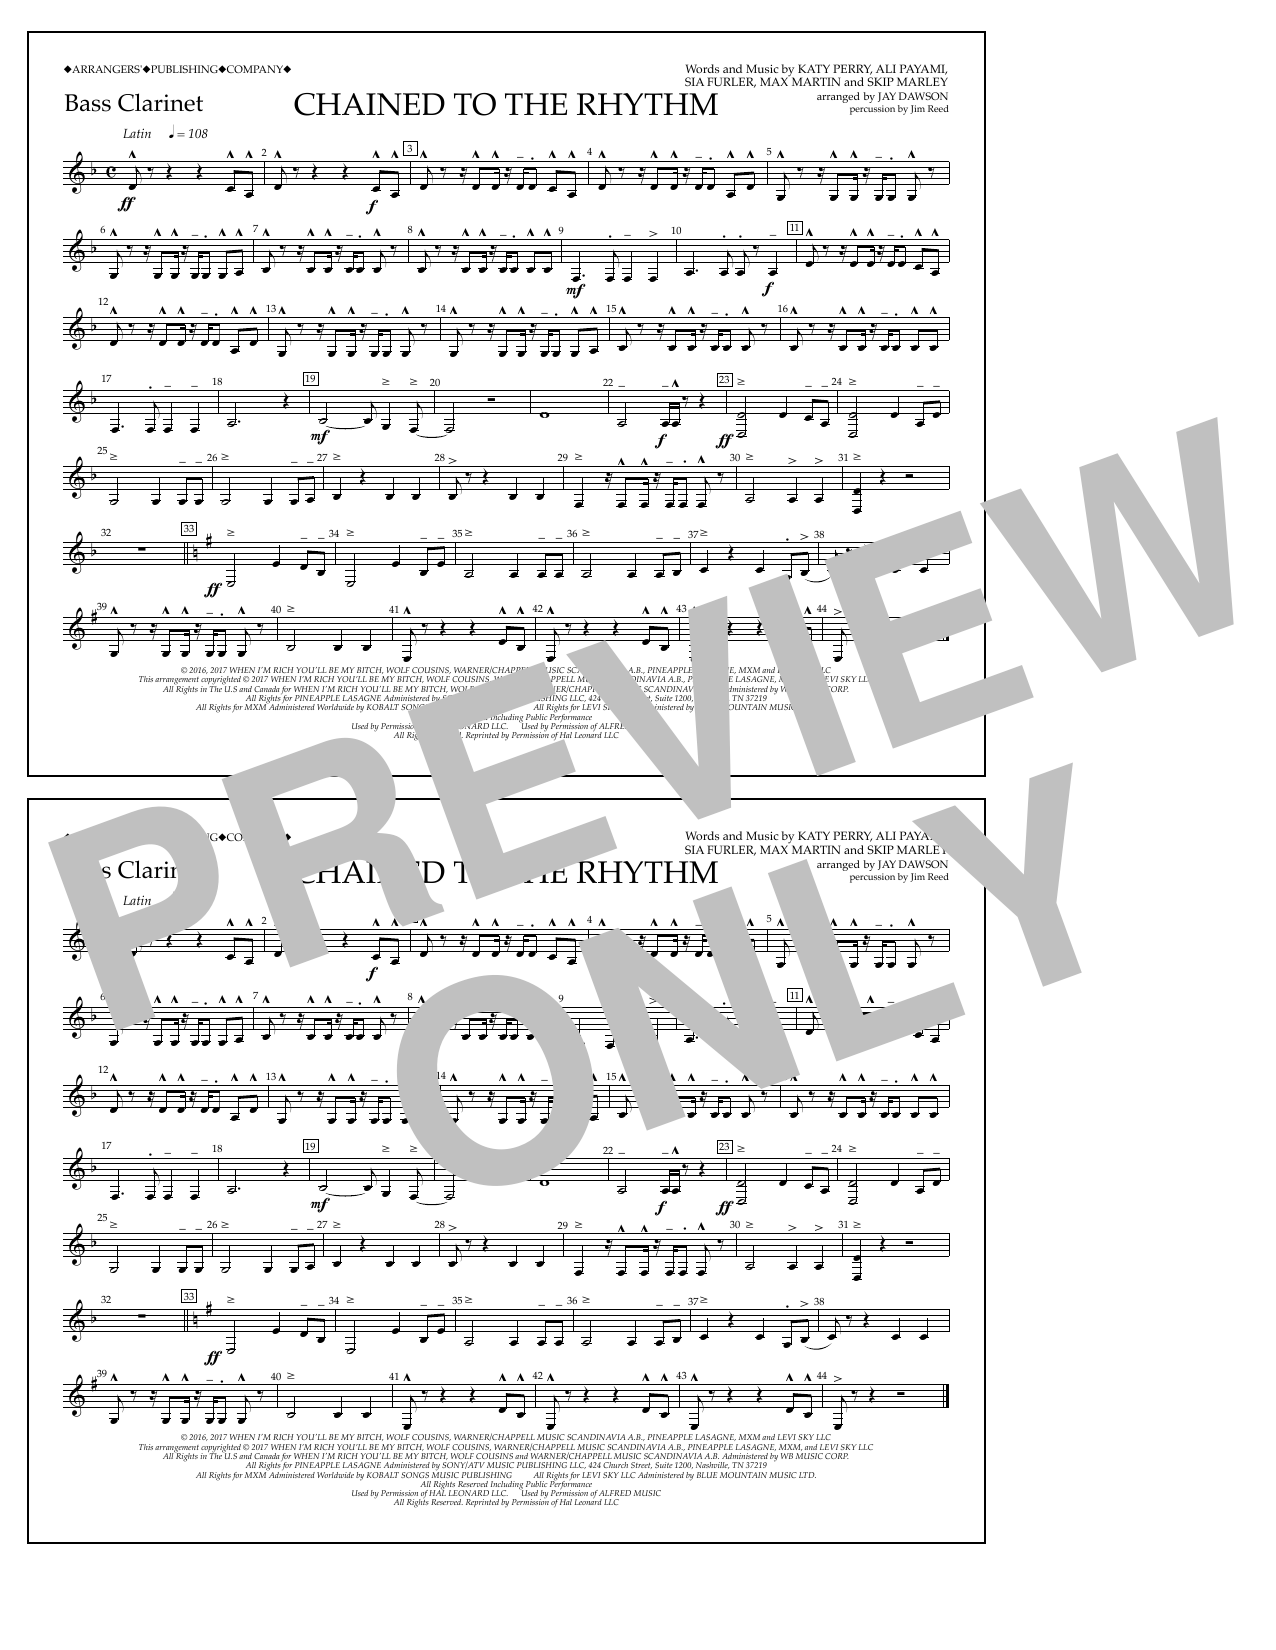 Chained to the Rhythm - Bass Clarinet Sheet Music